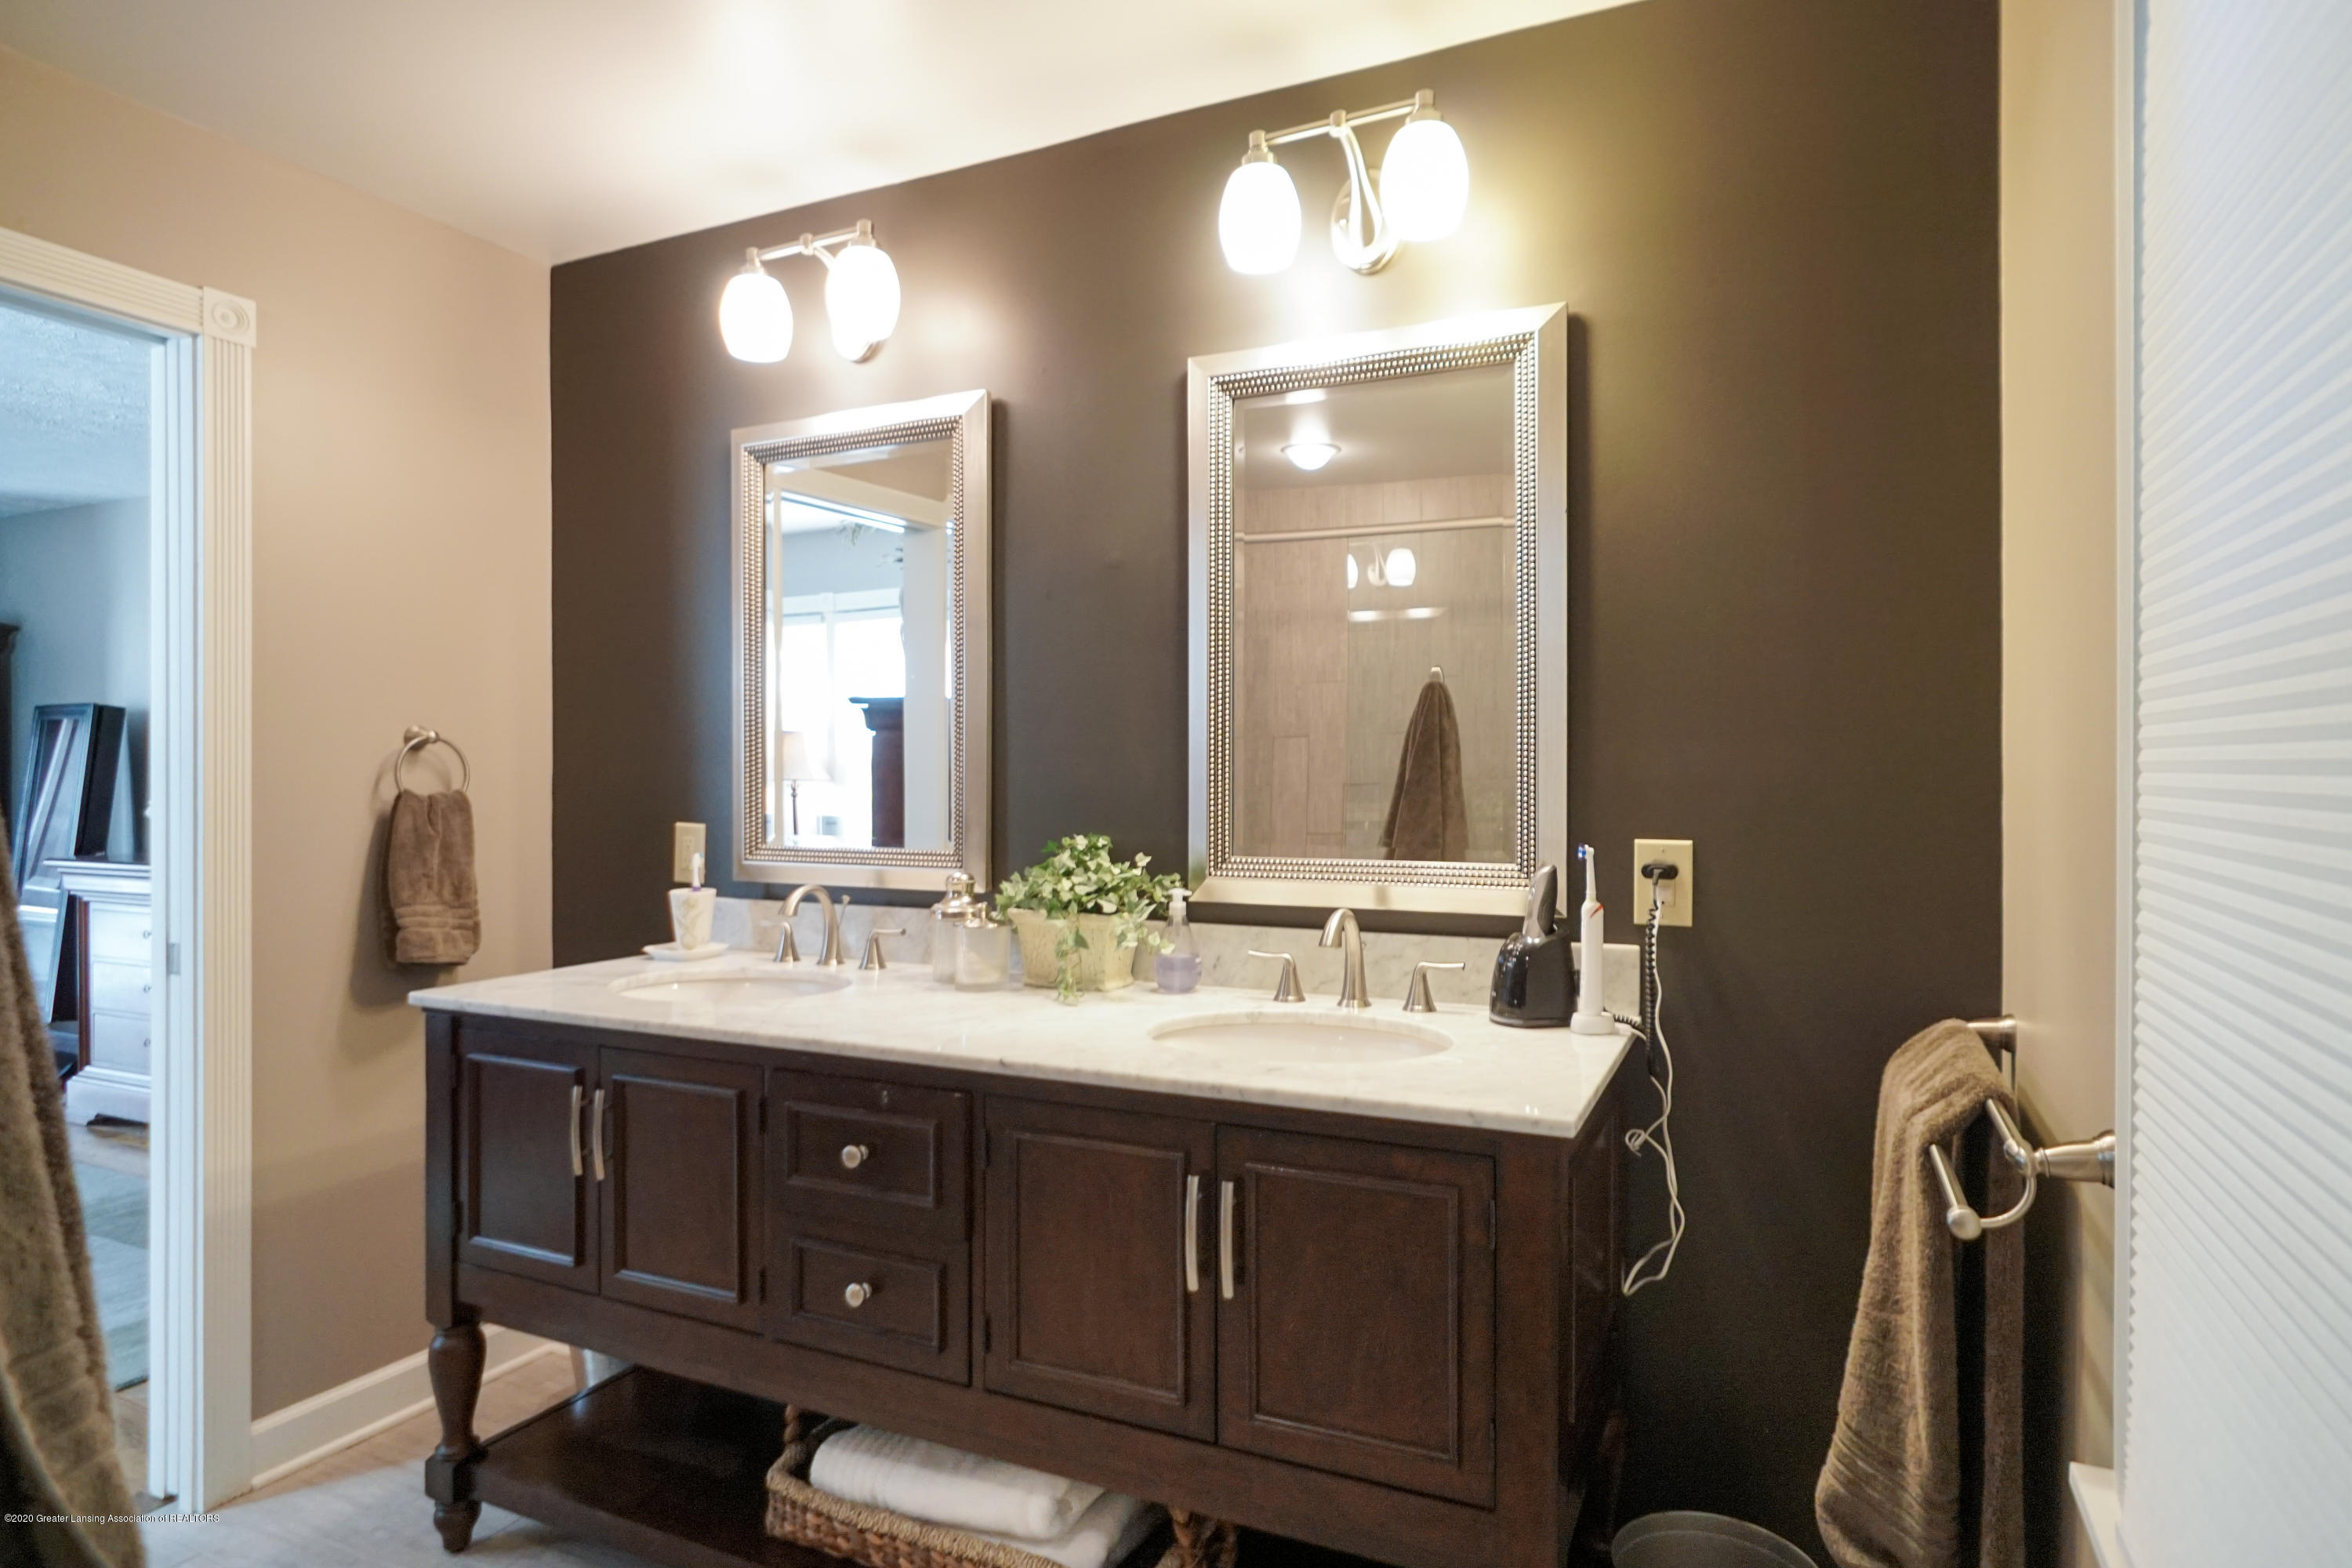 614 Whitehills Dr - Lovely double sink area - 25